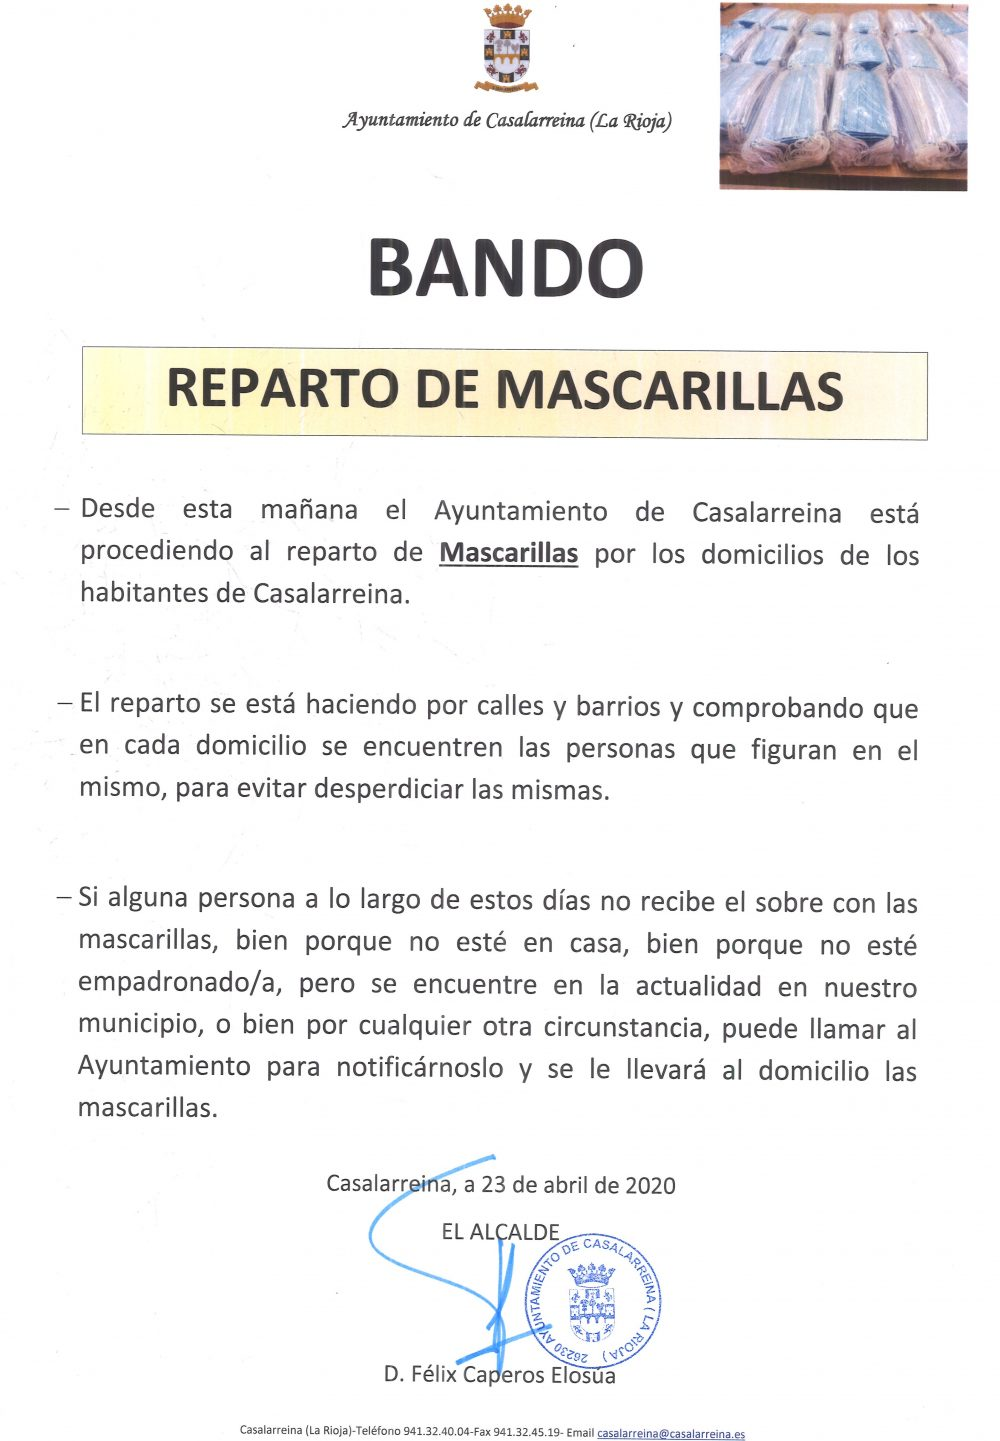 Reparto de Mascarillas